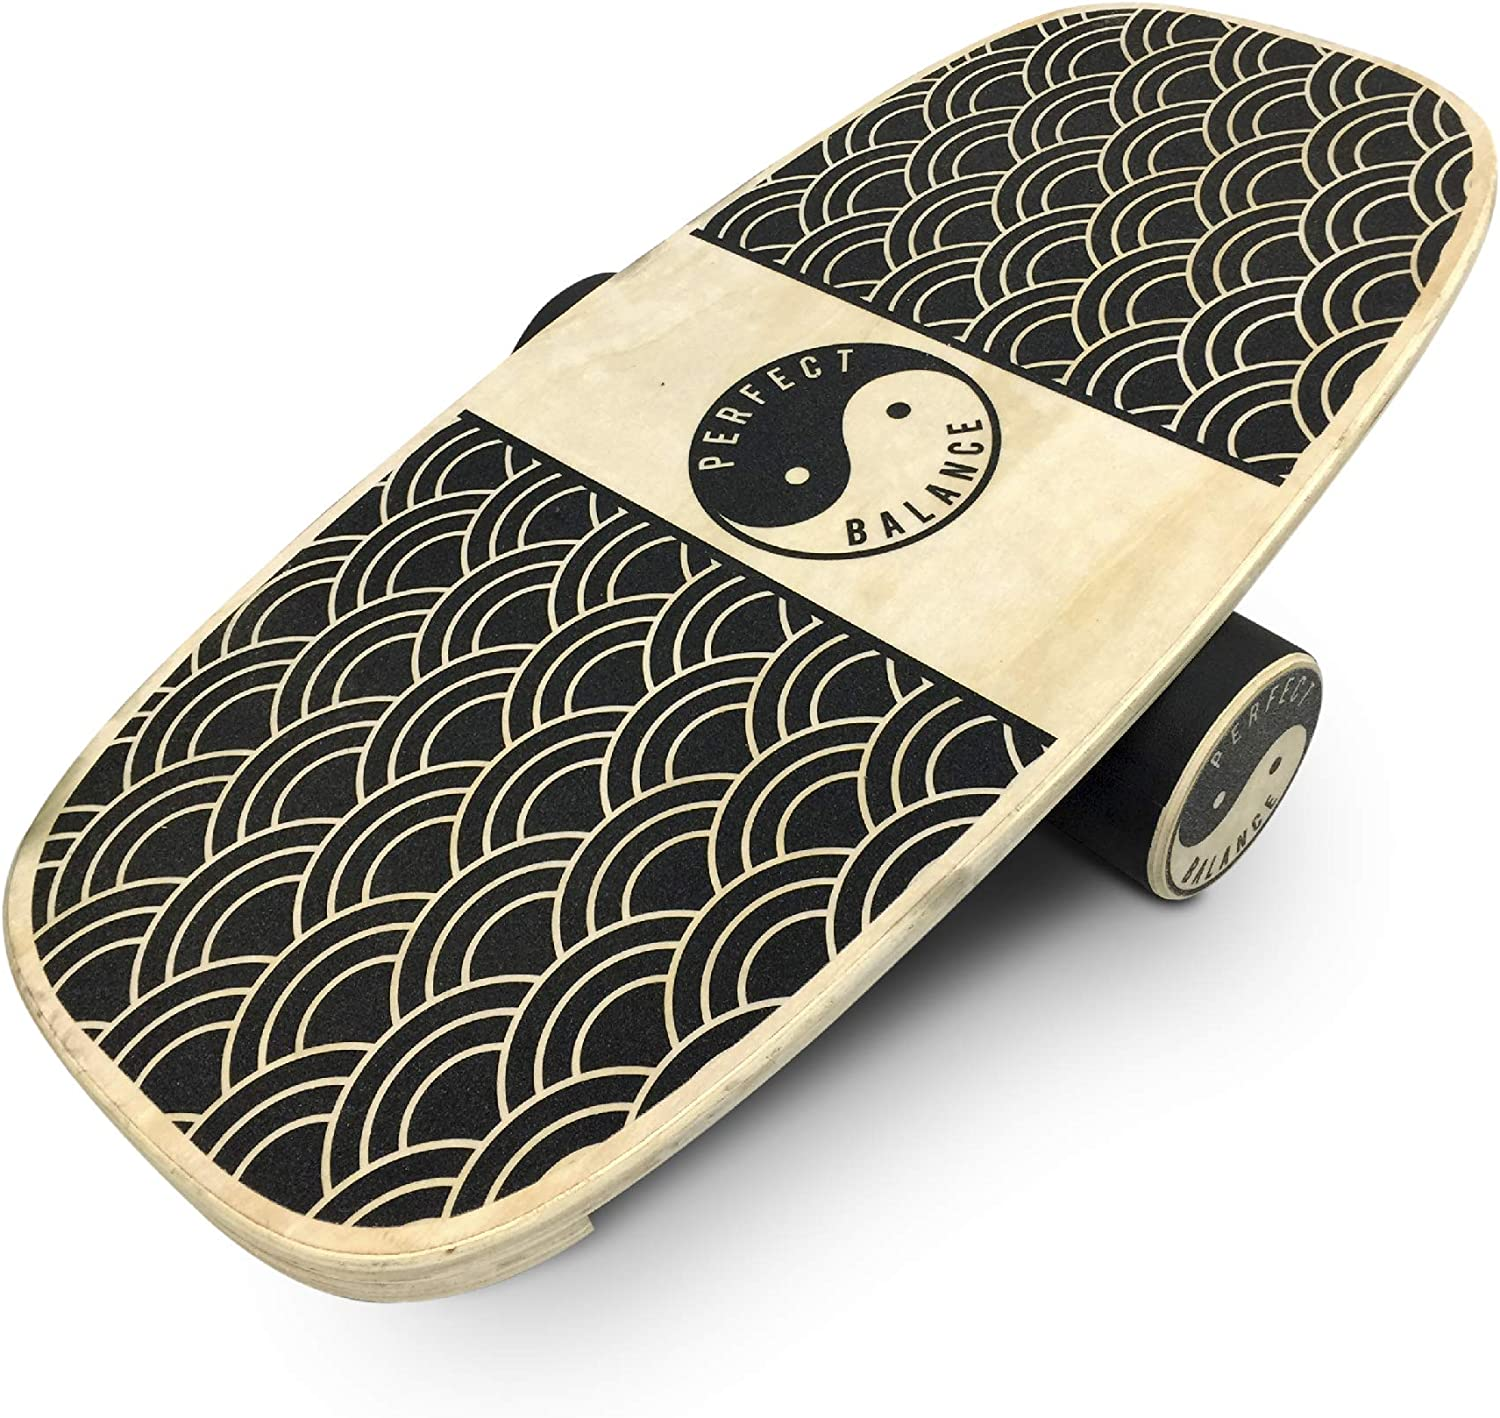 EasyGoProducts Perfect Balance Board Wooden Trainer for Fitness, Surfing, Snowboarding, Skateboarding, Skiing and Exercise